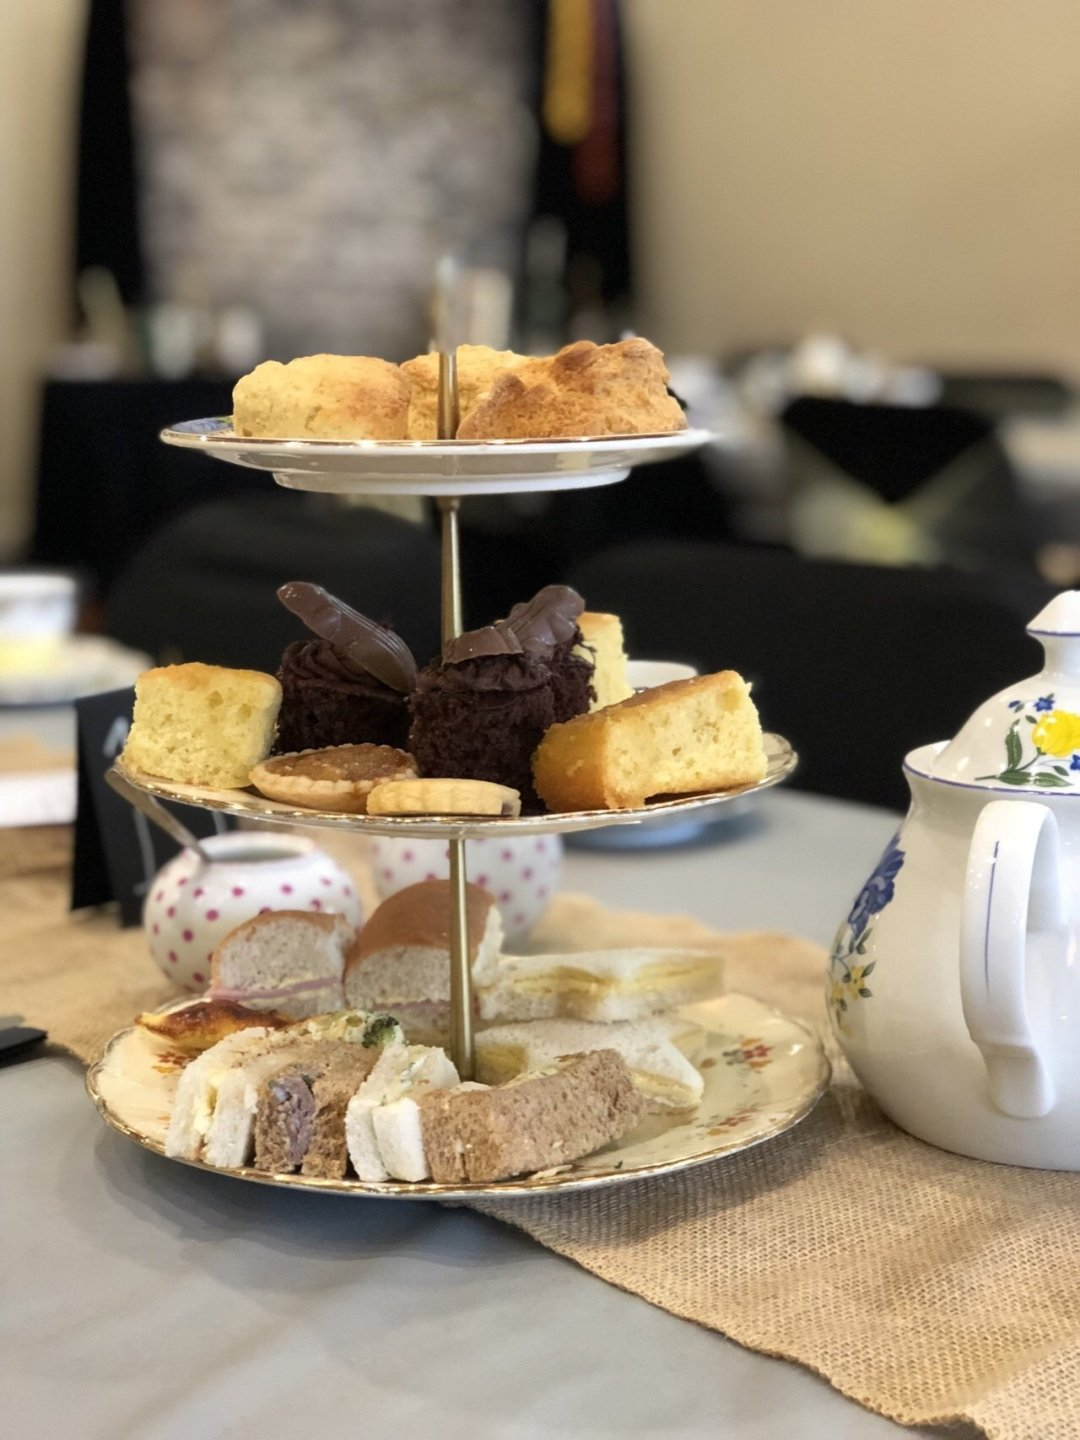 A close up of a cake stand with sandwiches and cakes at the magical themed afternoon tea